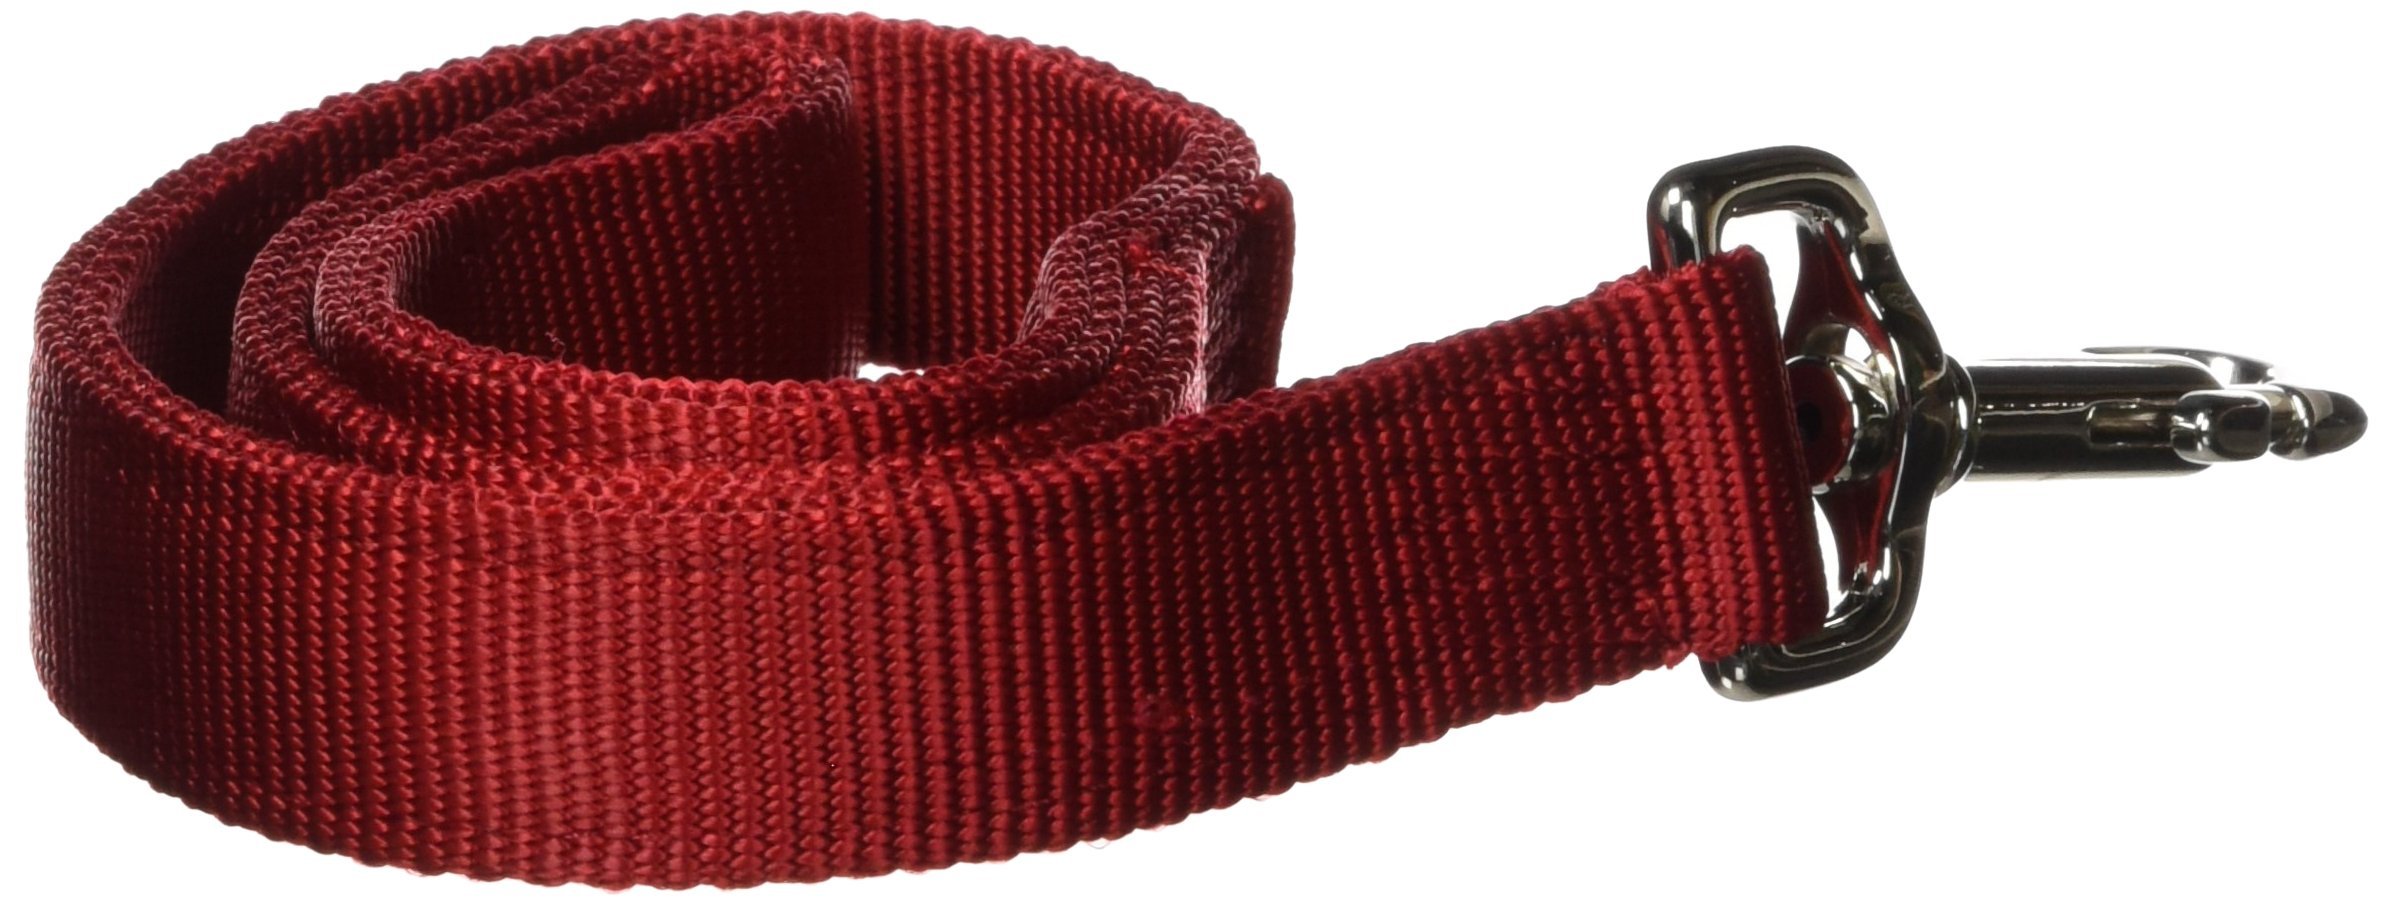 Hamilton Double Thick Nylon Dog Traffic Lead Total Length Including Loop Handle, 1-Inch by 2-Feet, Red